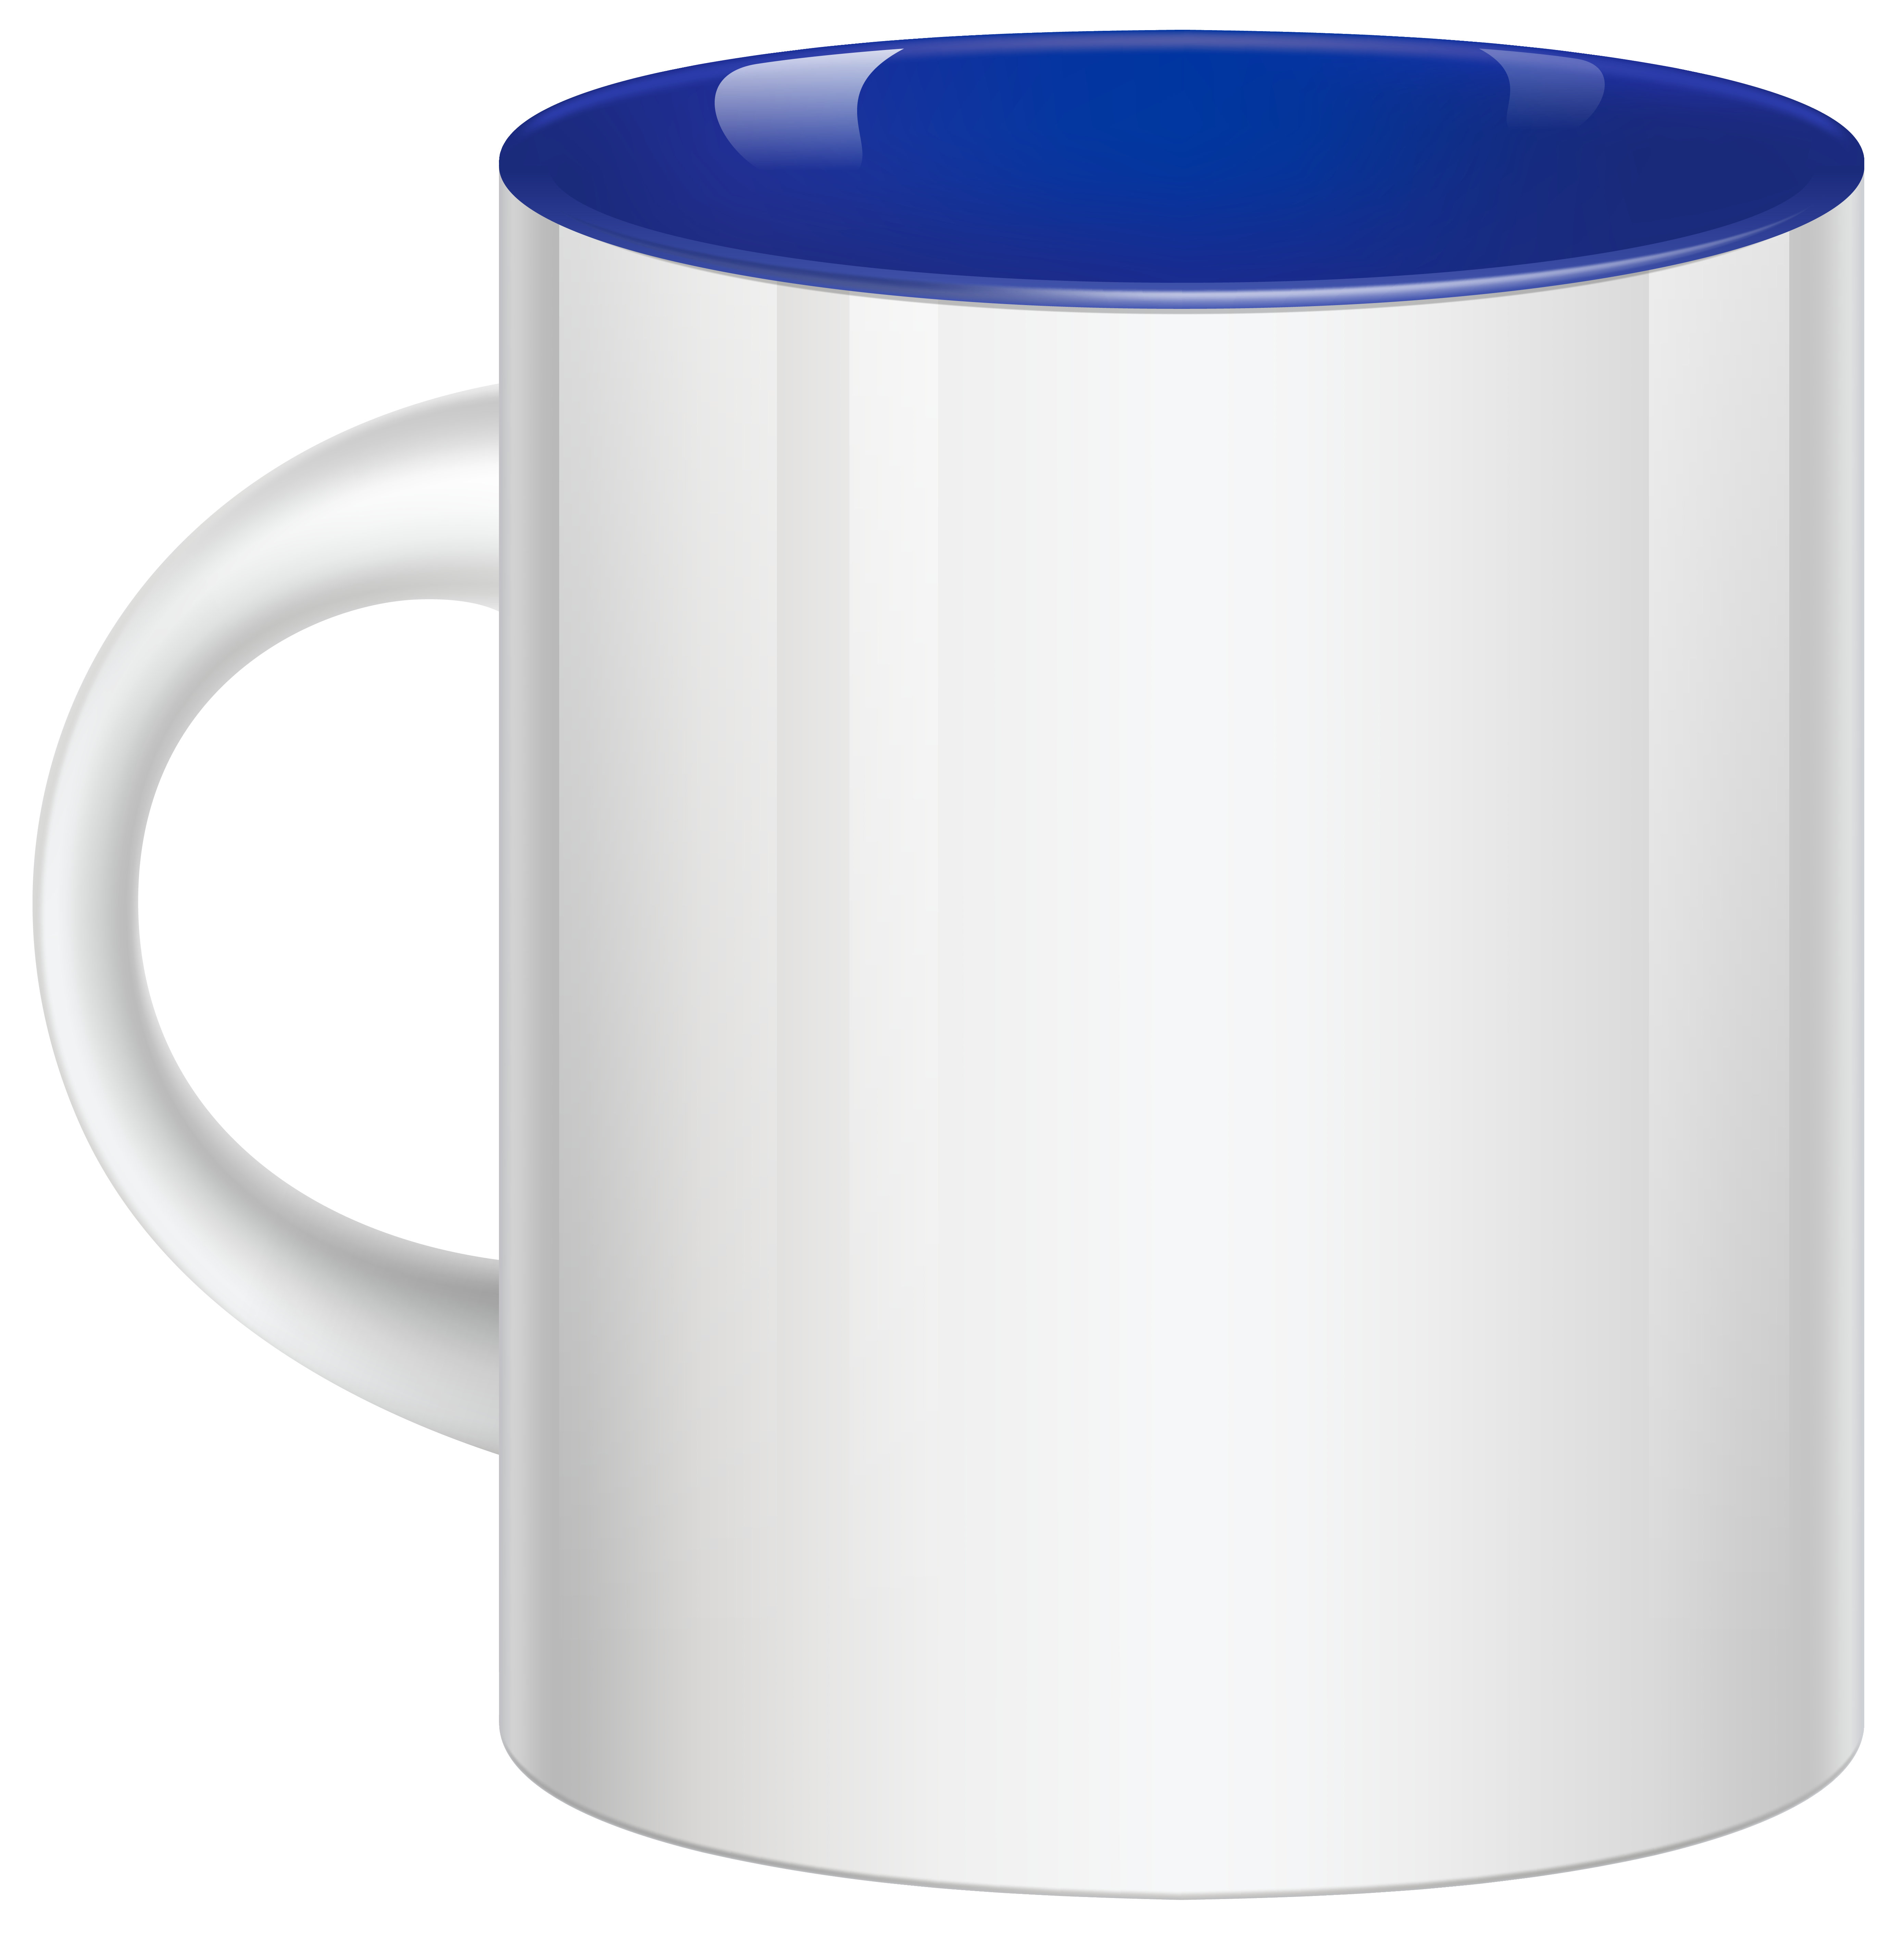 White Blue Cup PNG Clipart.